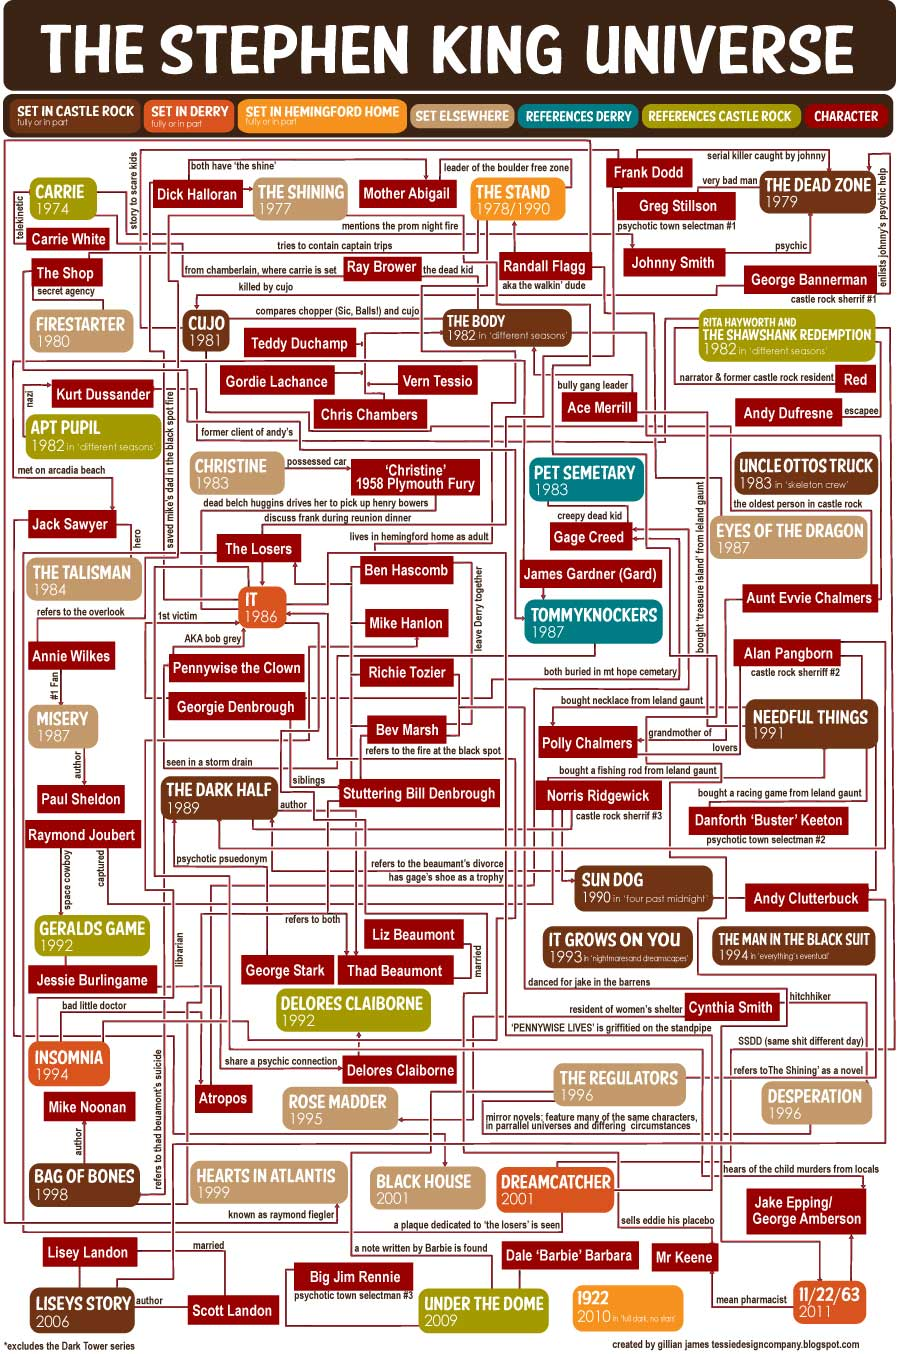 Stephenh-King-Universe-FLowchart-900px